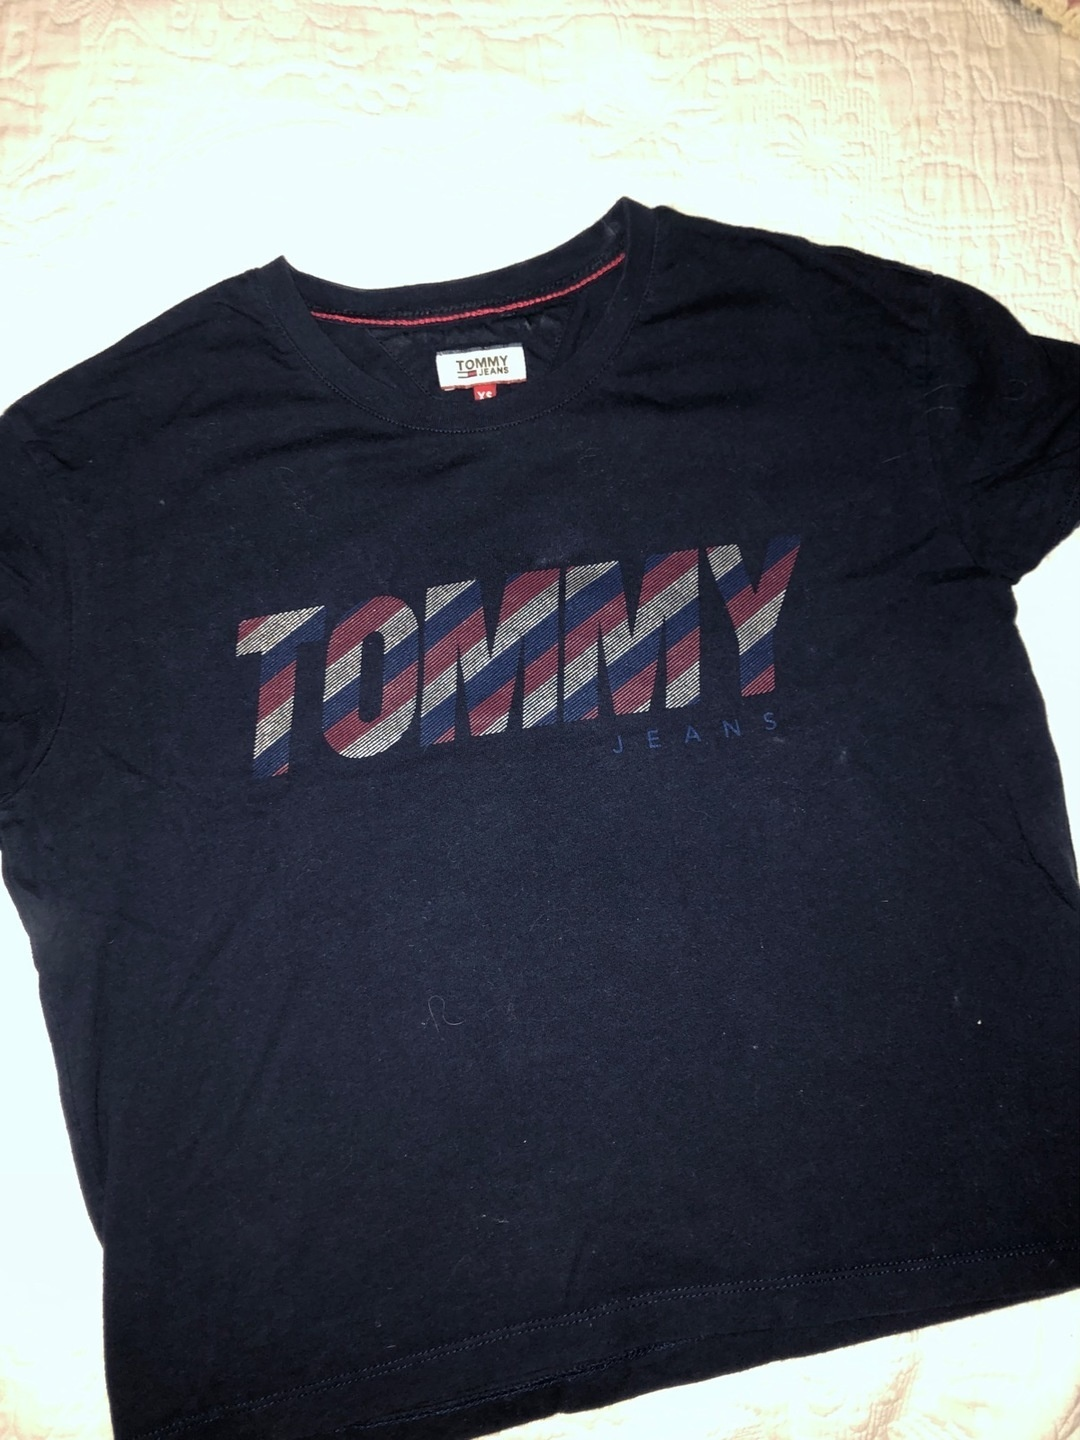 Naiset topit & t-paidat - TOMMY JEANS photo 1